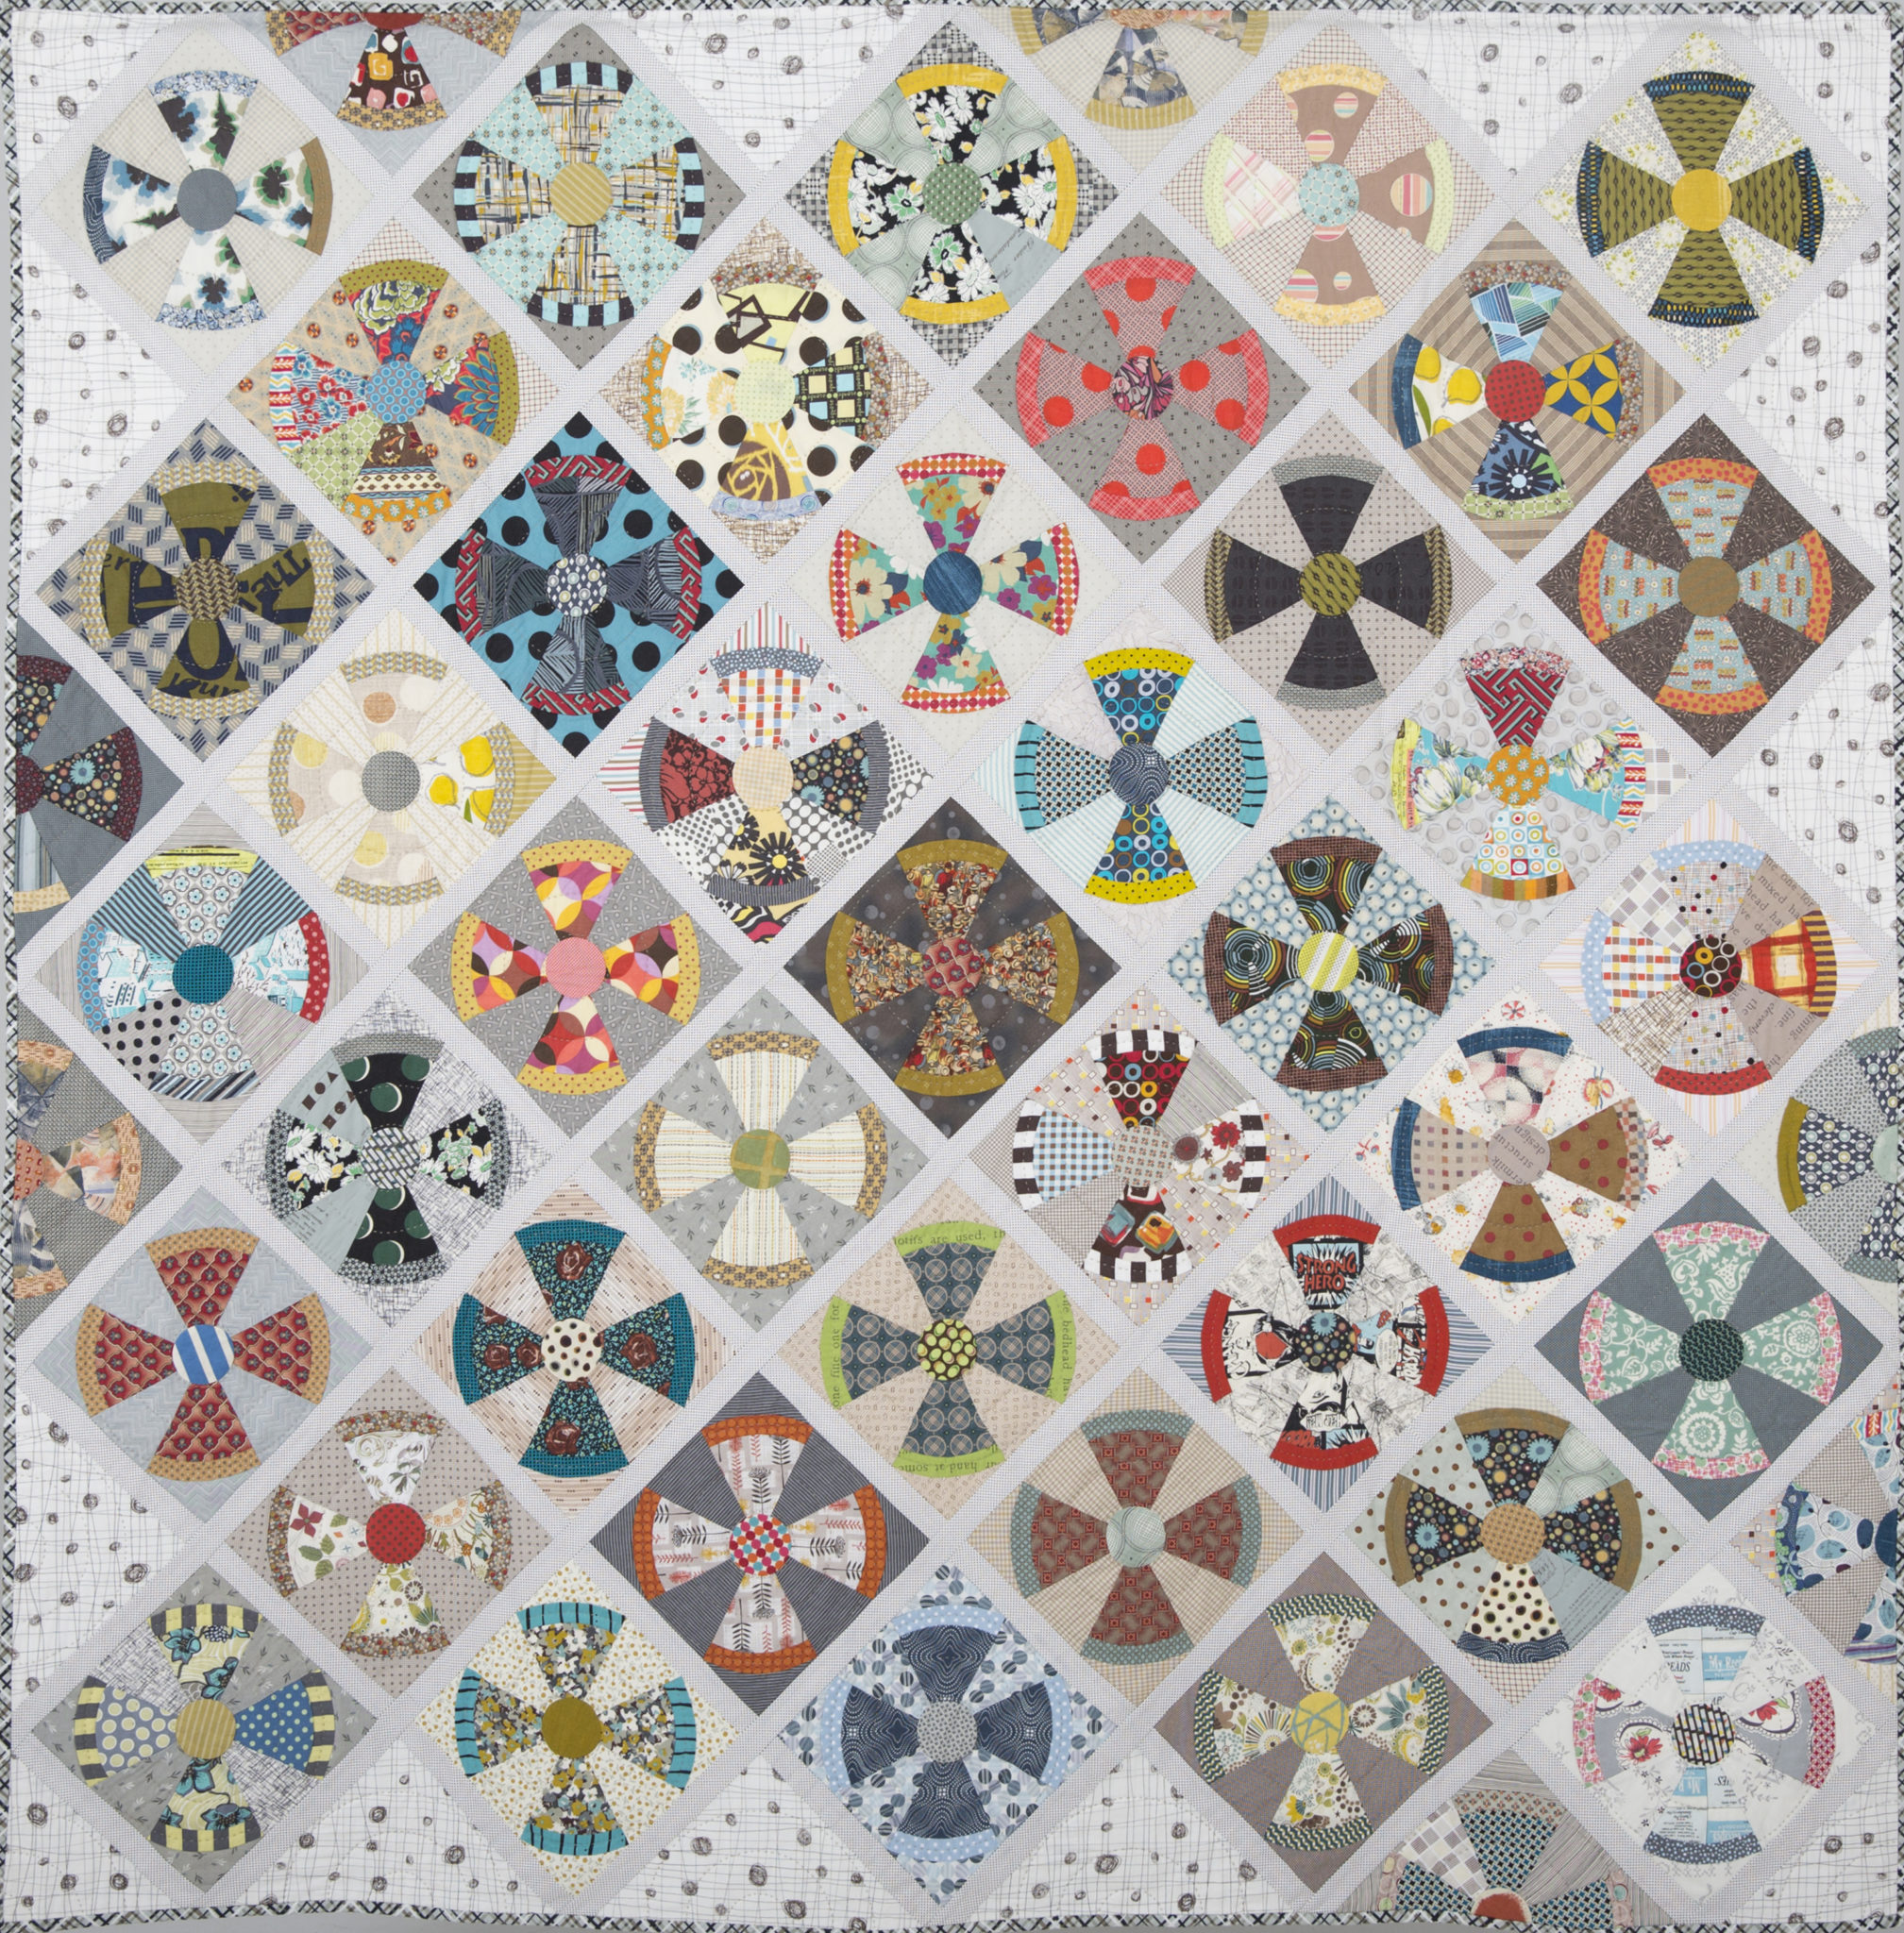 Jen Kingwell: Steam Punk - Whole Quilt Photo